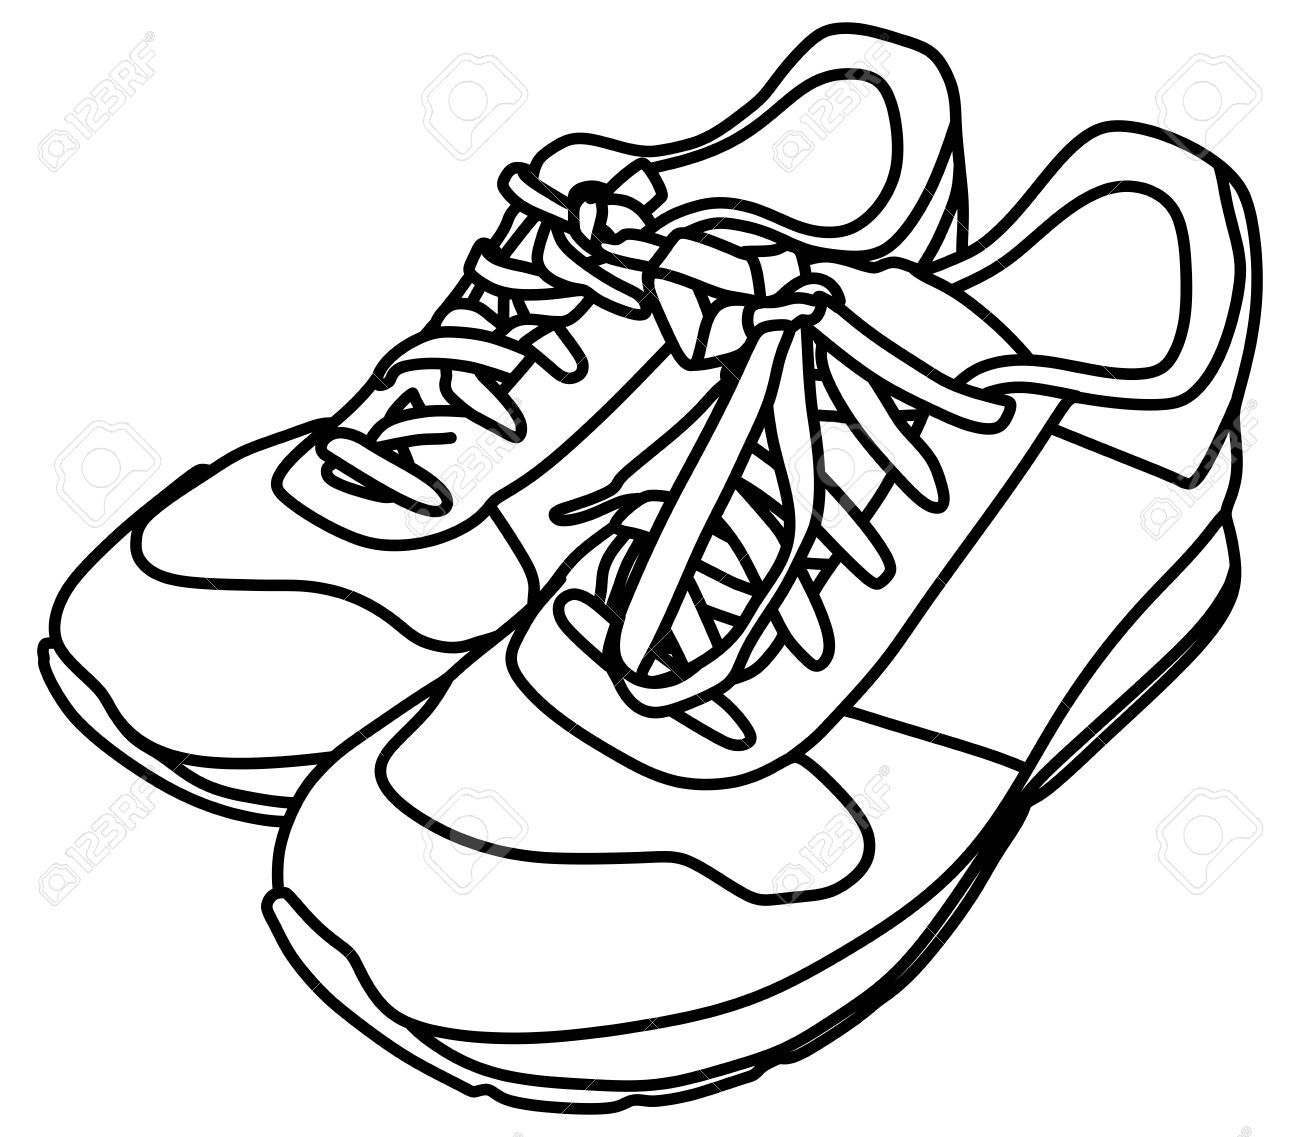 Running shoes clipart black and white 4 » Clipart Portal.